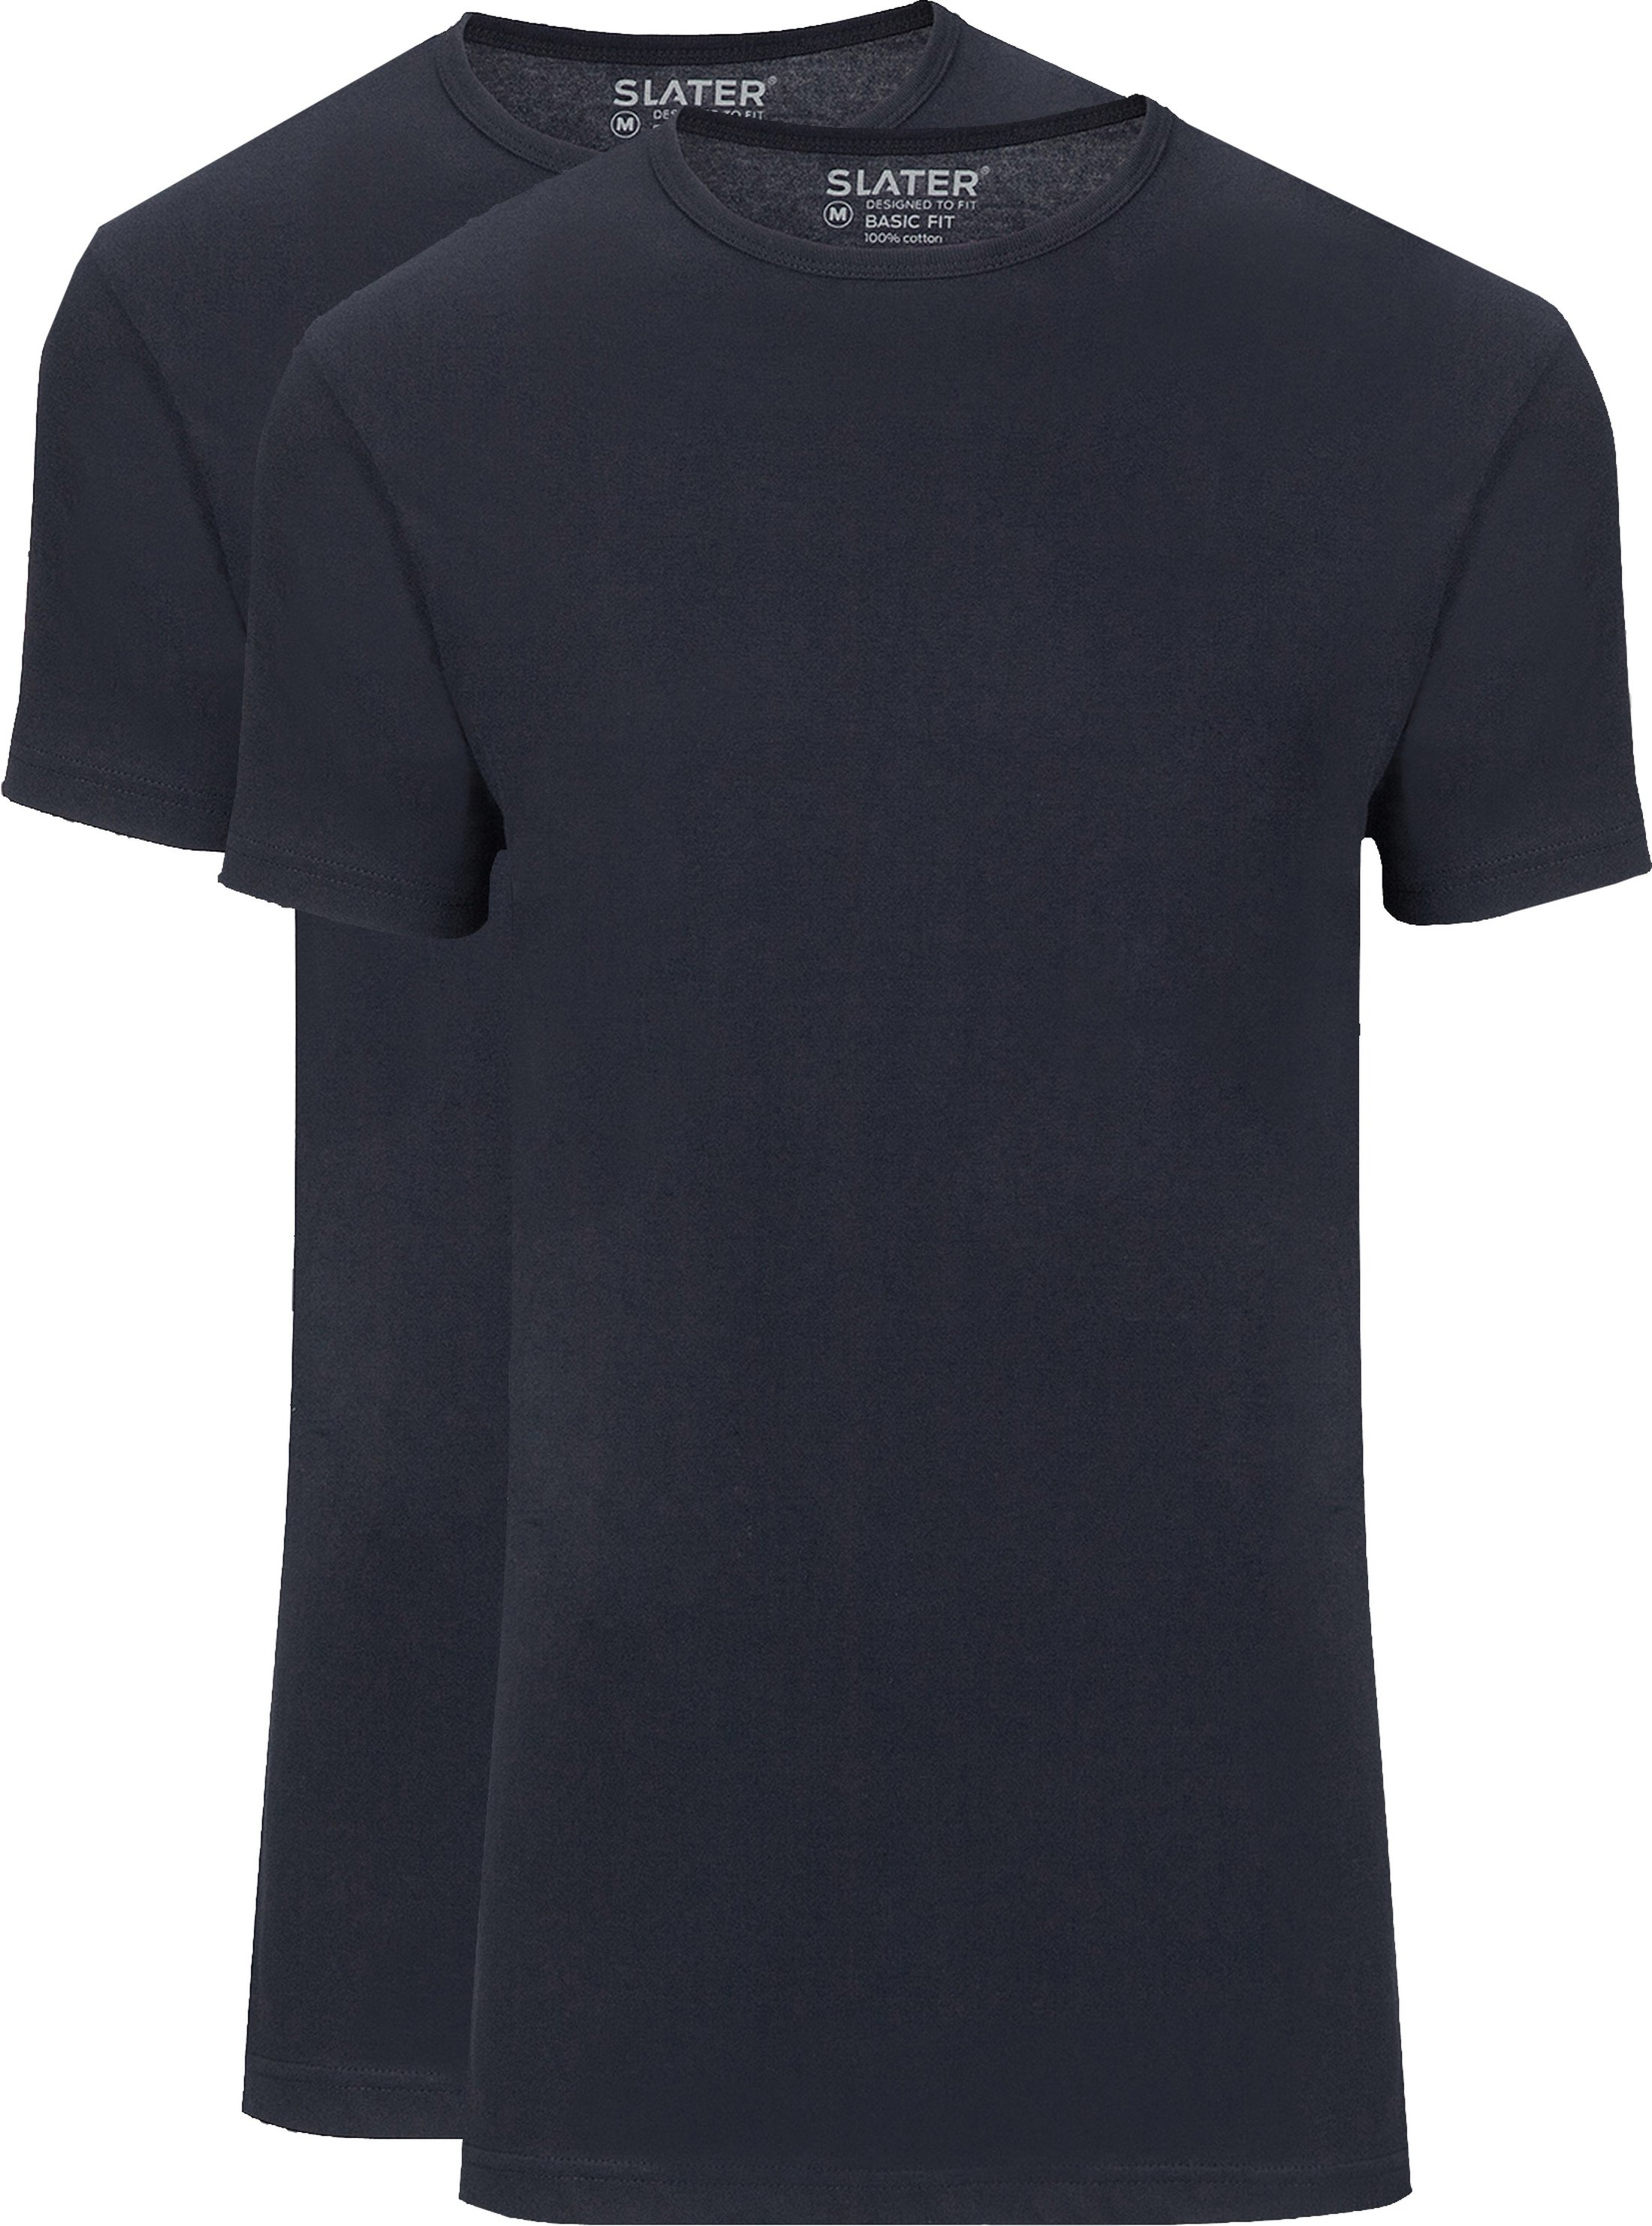 Slater 2-pack Basic Fit T-shirt Navy foto 0